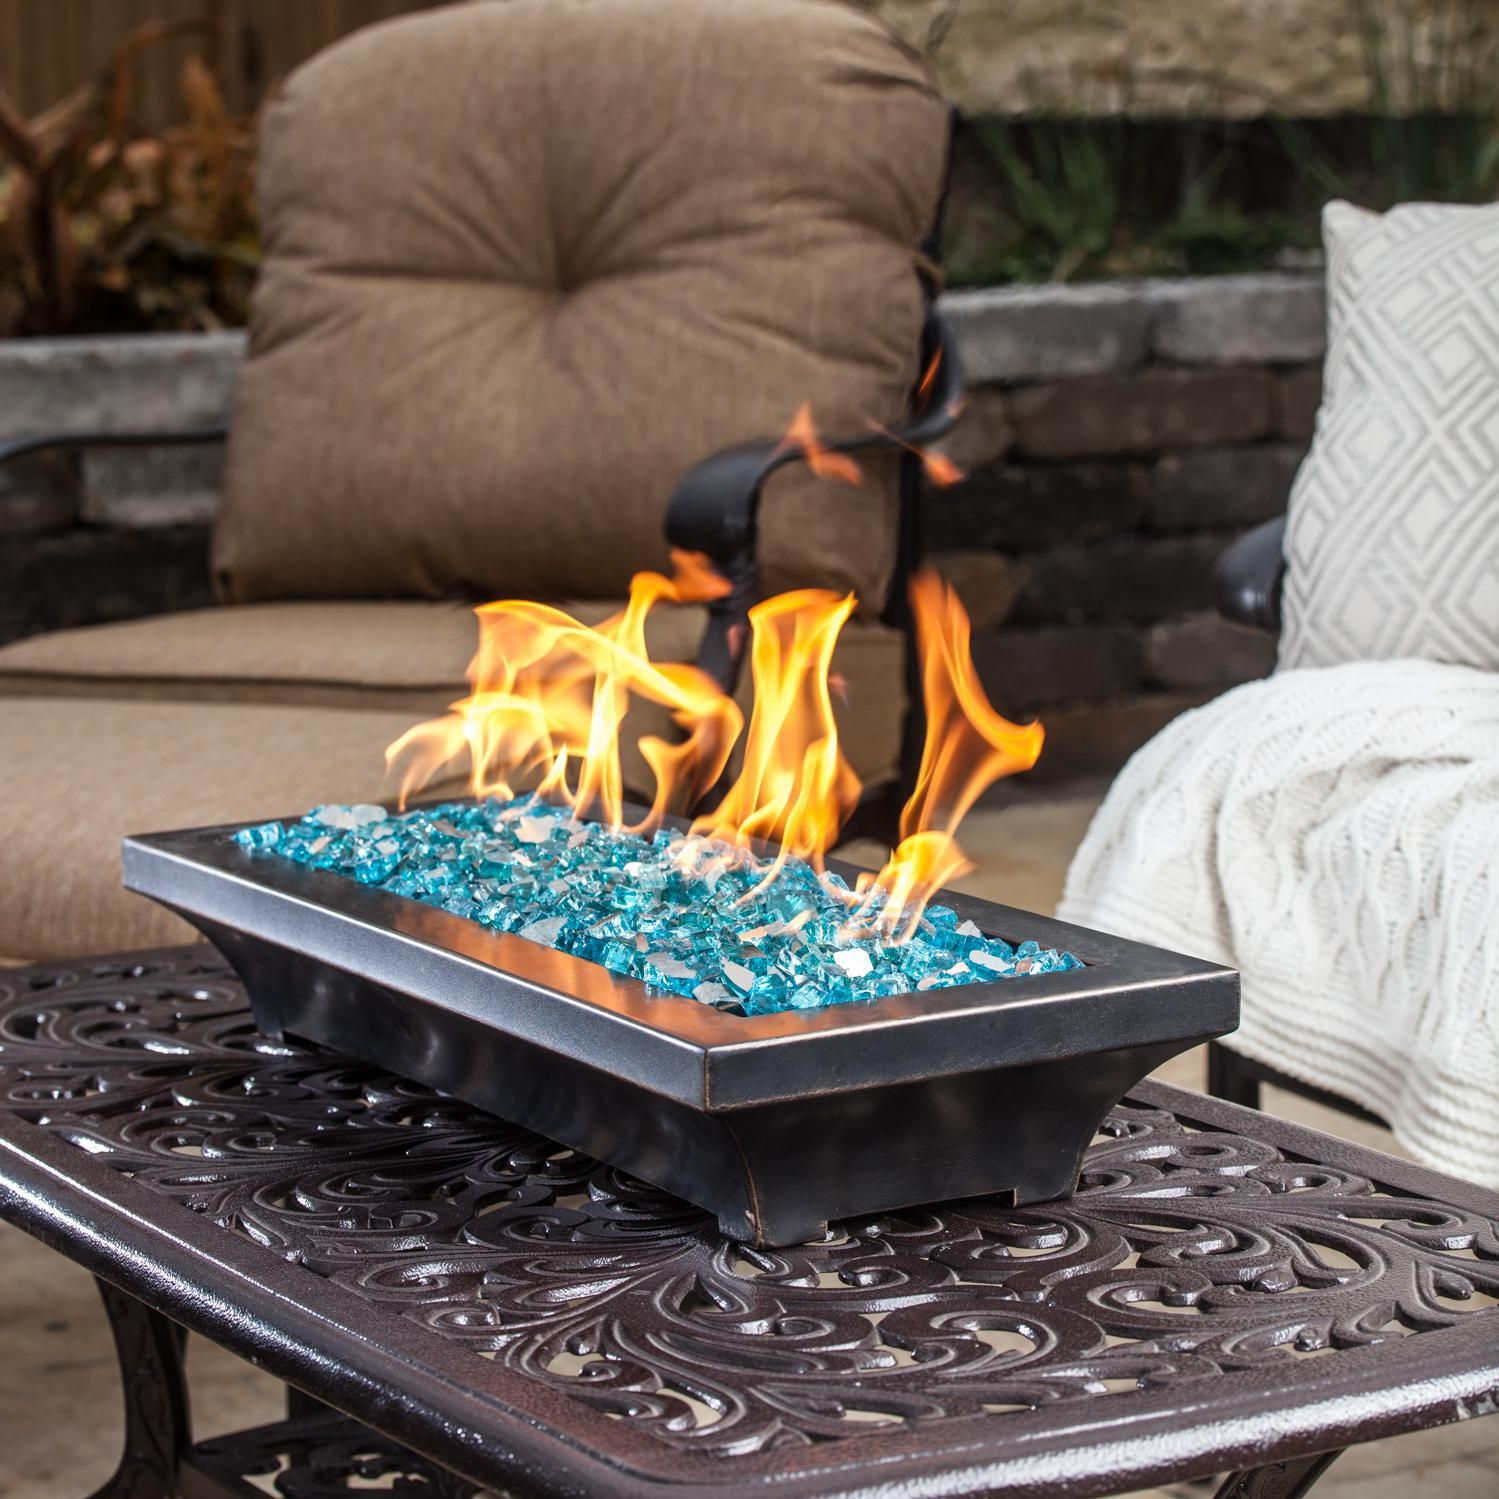 Pin On Pool Landscaping And Patio Ideas